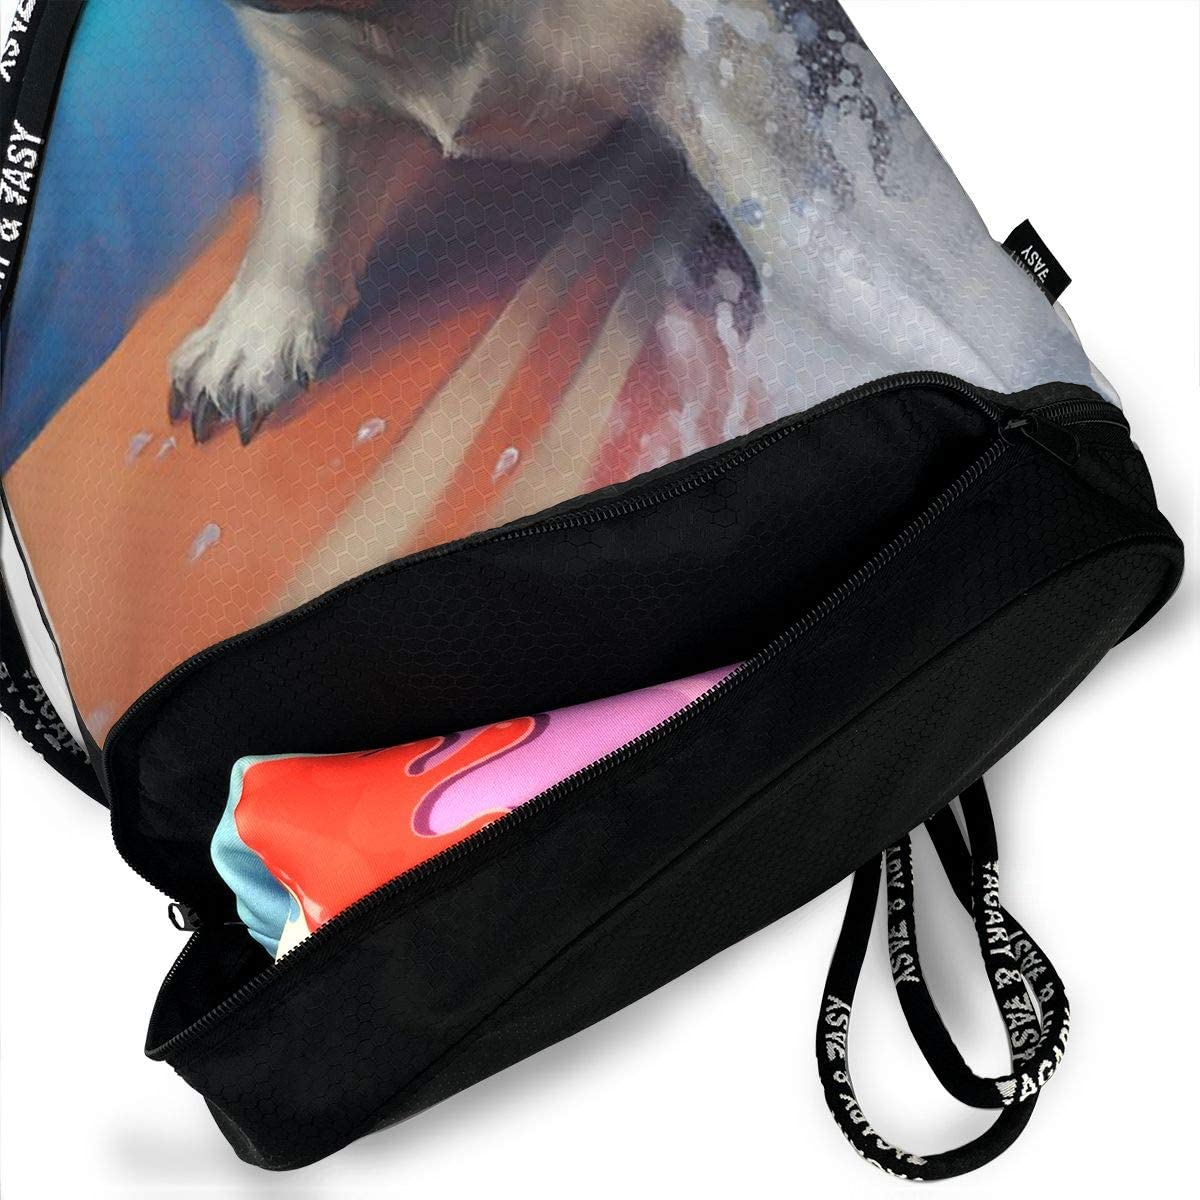 GymSack Drawstring Bag Sackpack Surfing Dog Sport Cinch Pack Simple Bundle Pocke Backpack For Men Women